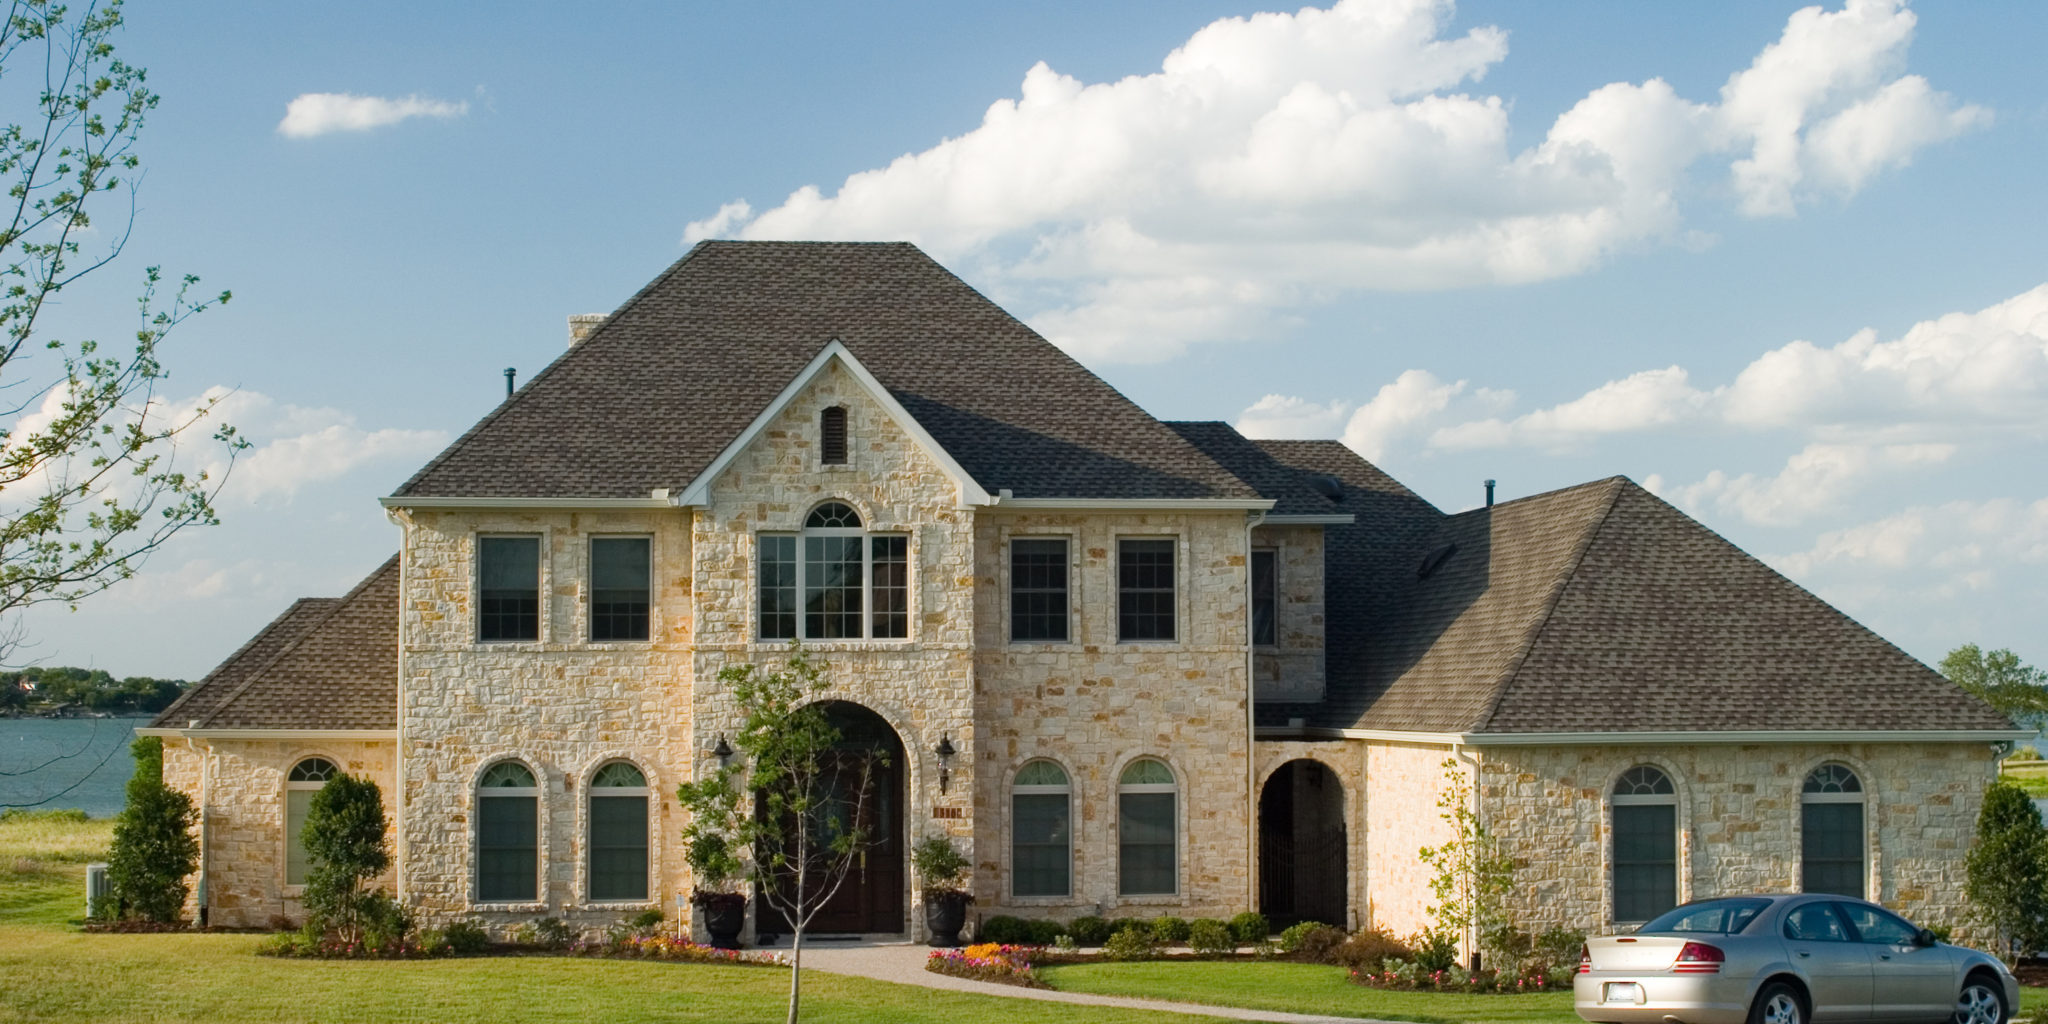 Shingle Roofs by ARP Roofing & Remodeling